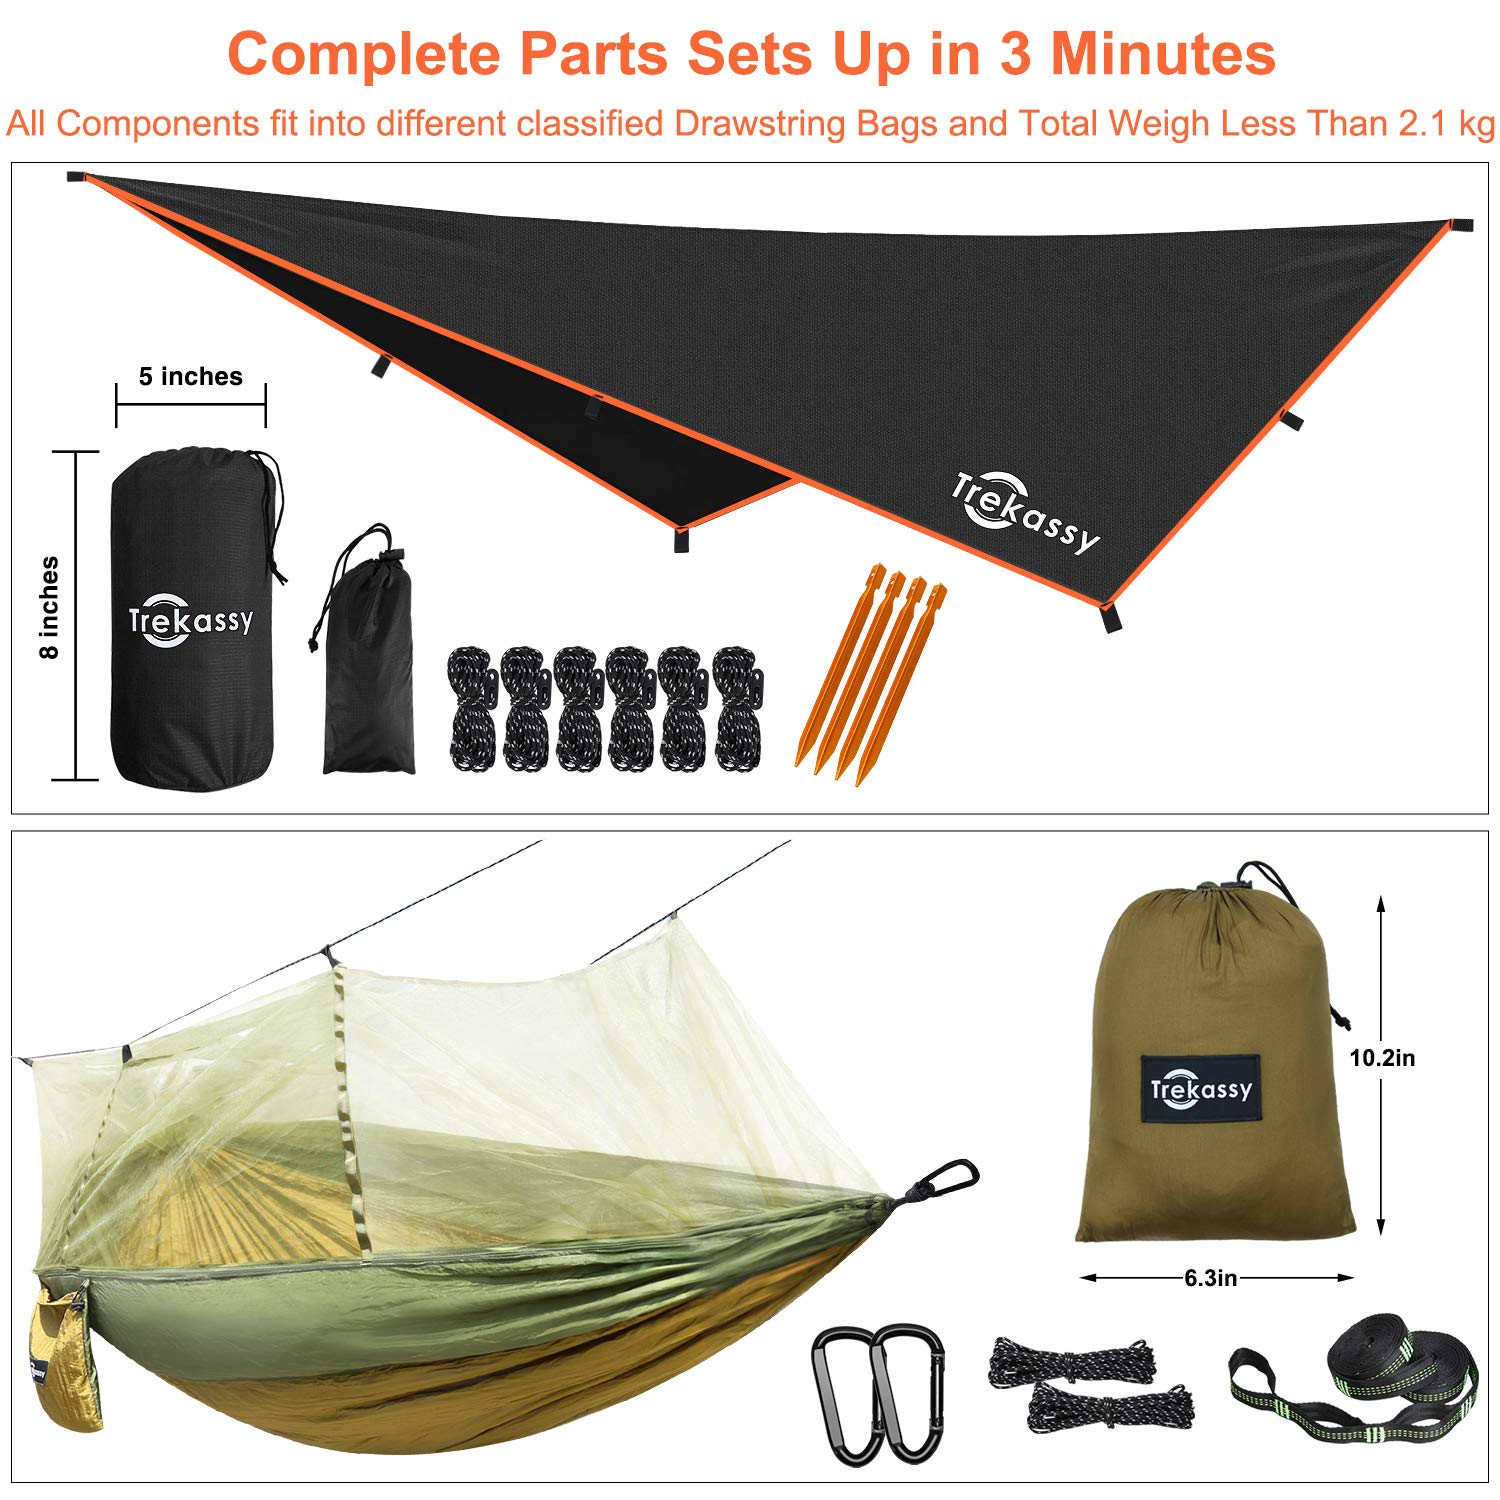 Trekassy 118 x 78 Portable Double Camping Hammock with Removable Mosquito Bug Net, Rain Fly and Tree Straps for Indoor, Outdoor, Backpacking, Travel, Beach, Hiking